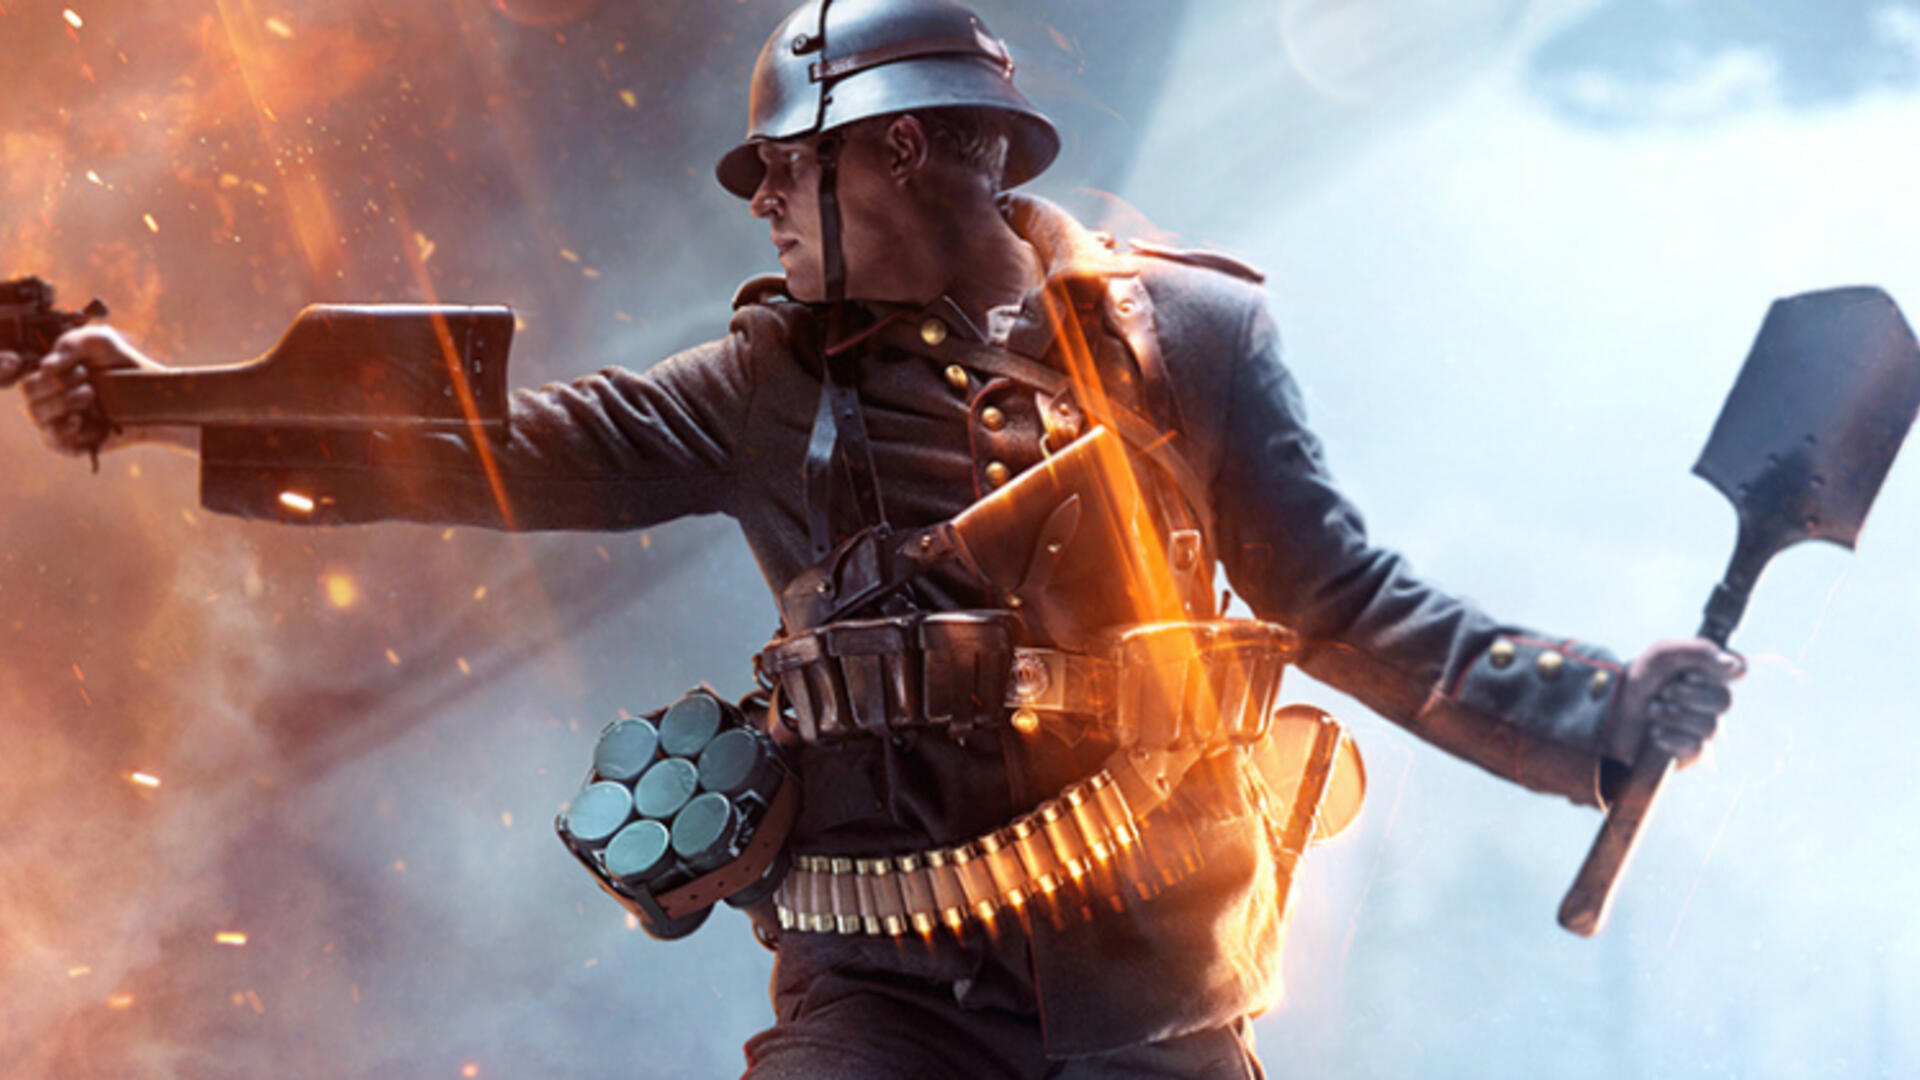 Source: Battlefield Returns to World War 2 This Year